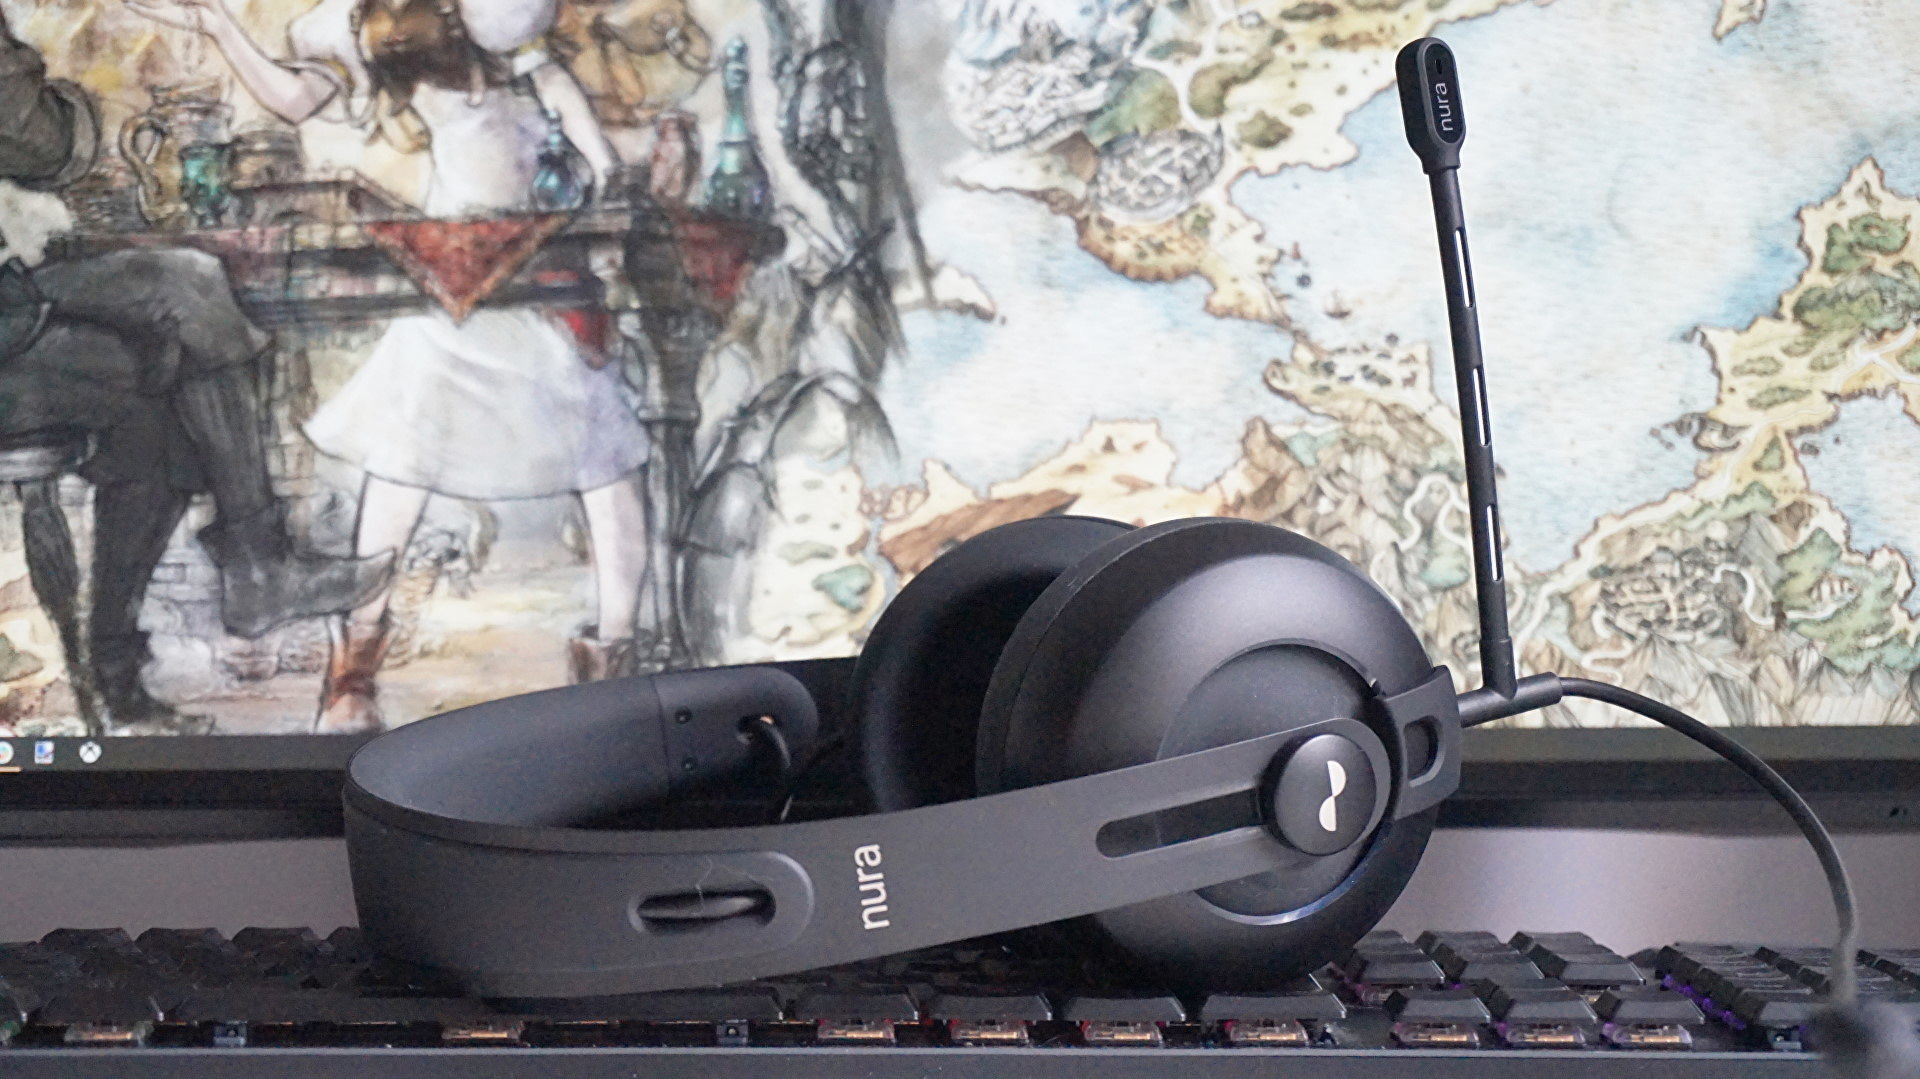 The nifty Nuraphone headphones now have a great gaming mic